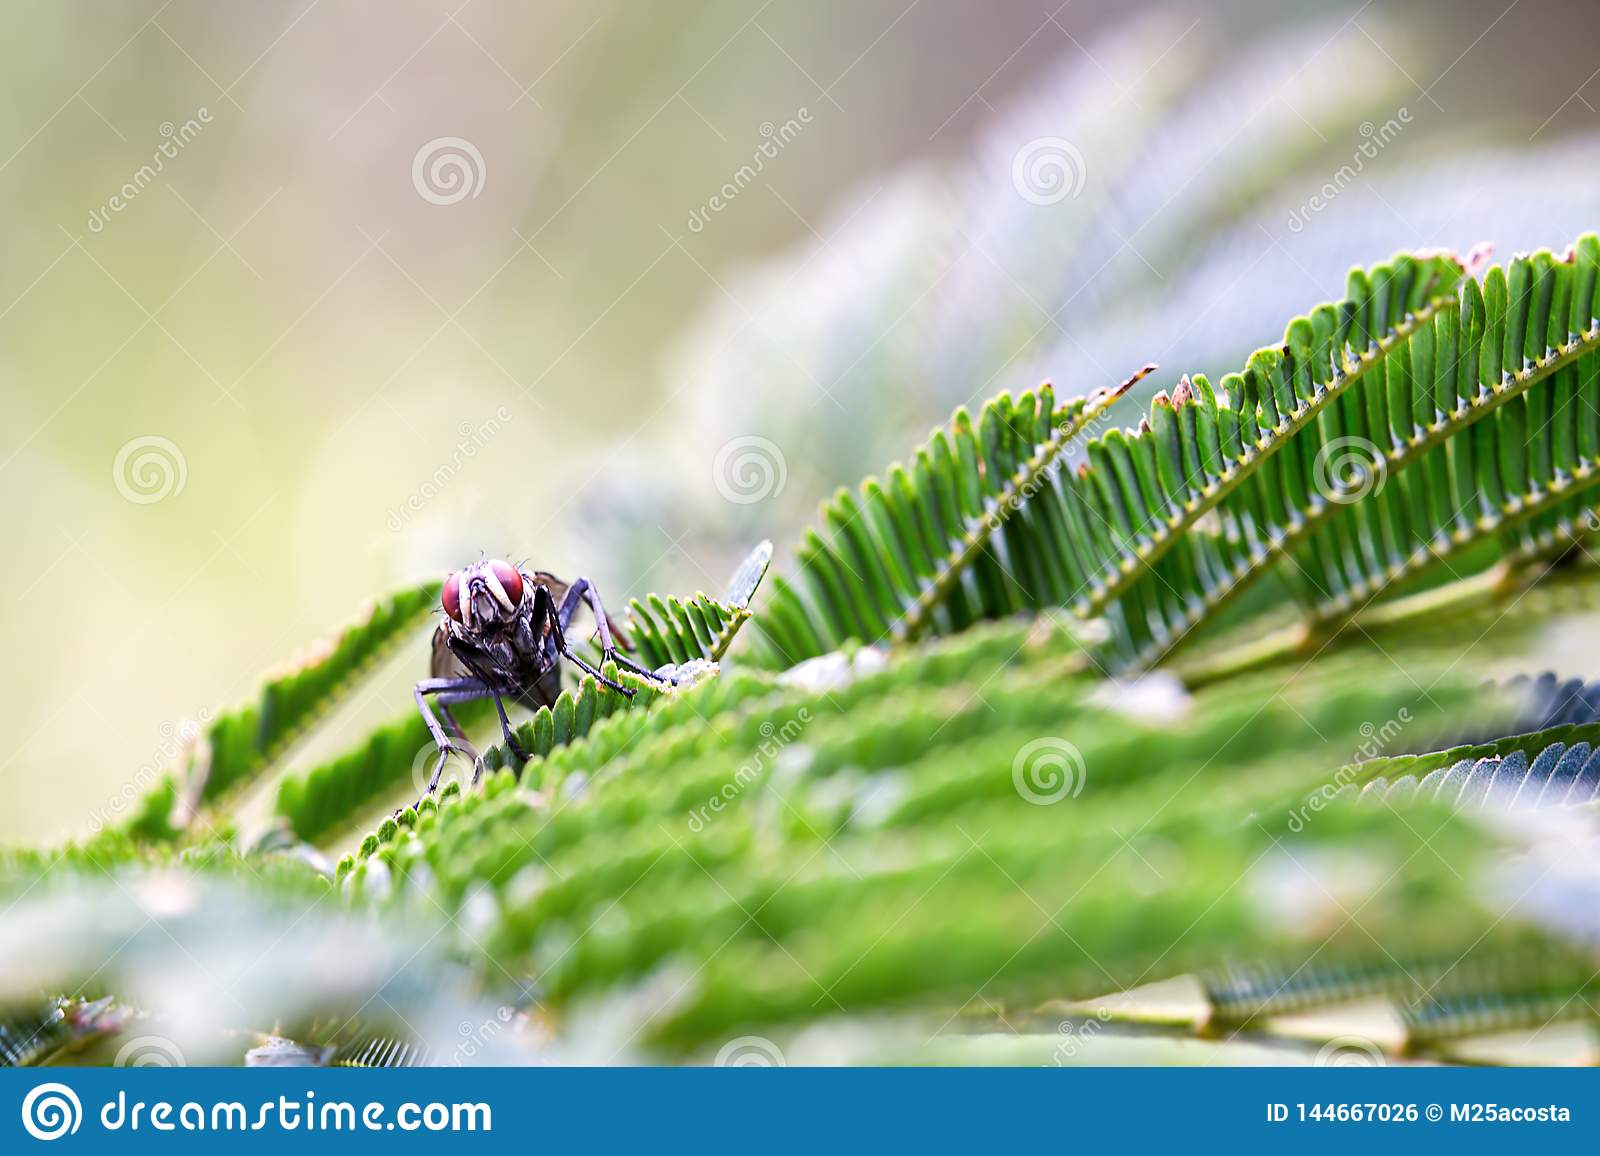 Red eyed fly resting over leaves of a mimosa